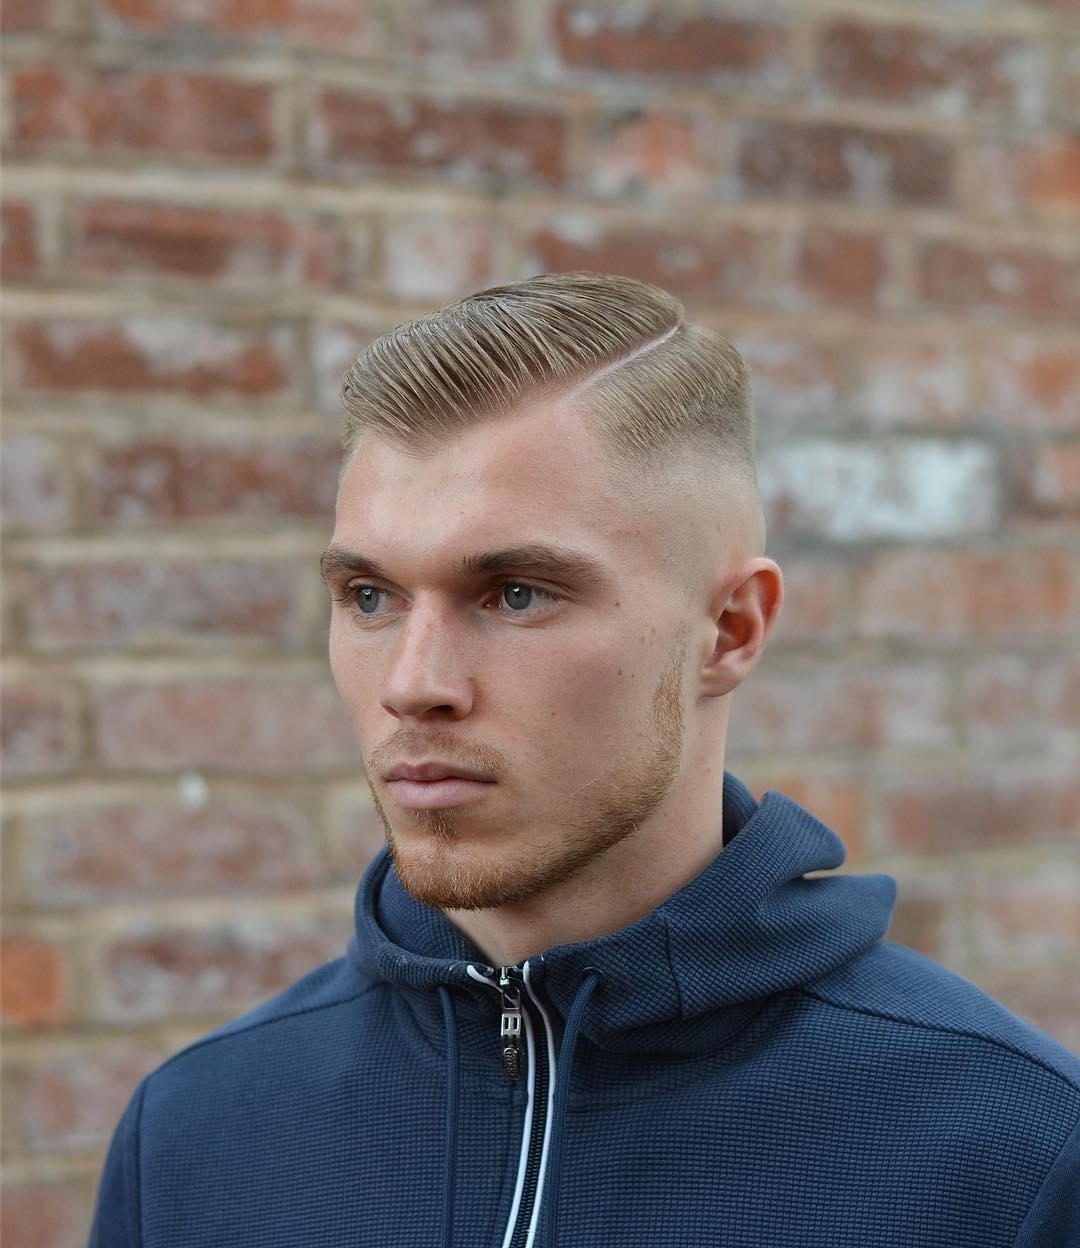 The 8 Best Hairstyles For Men With Thin Hair In 2021 The 10+ Stylish Medium Length Mens Hairstyles For Thin Hair